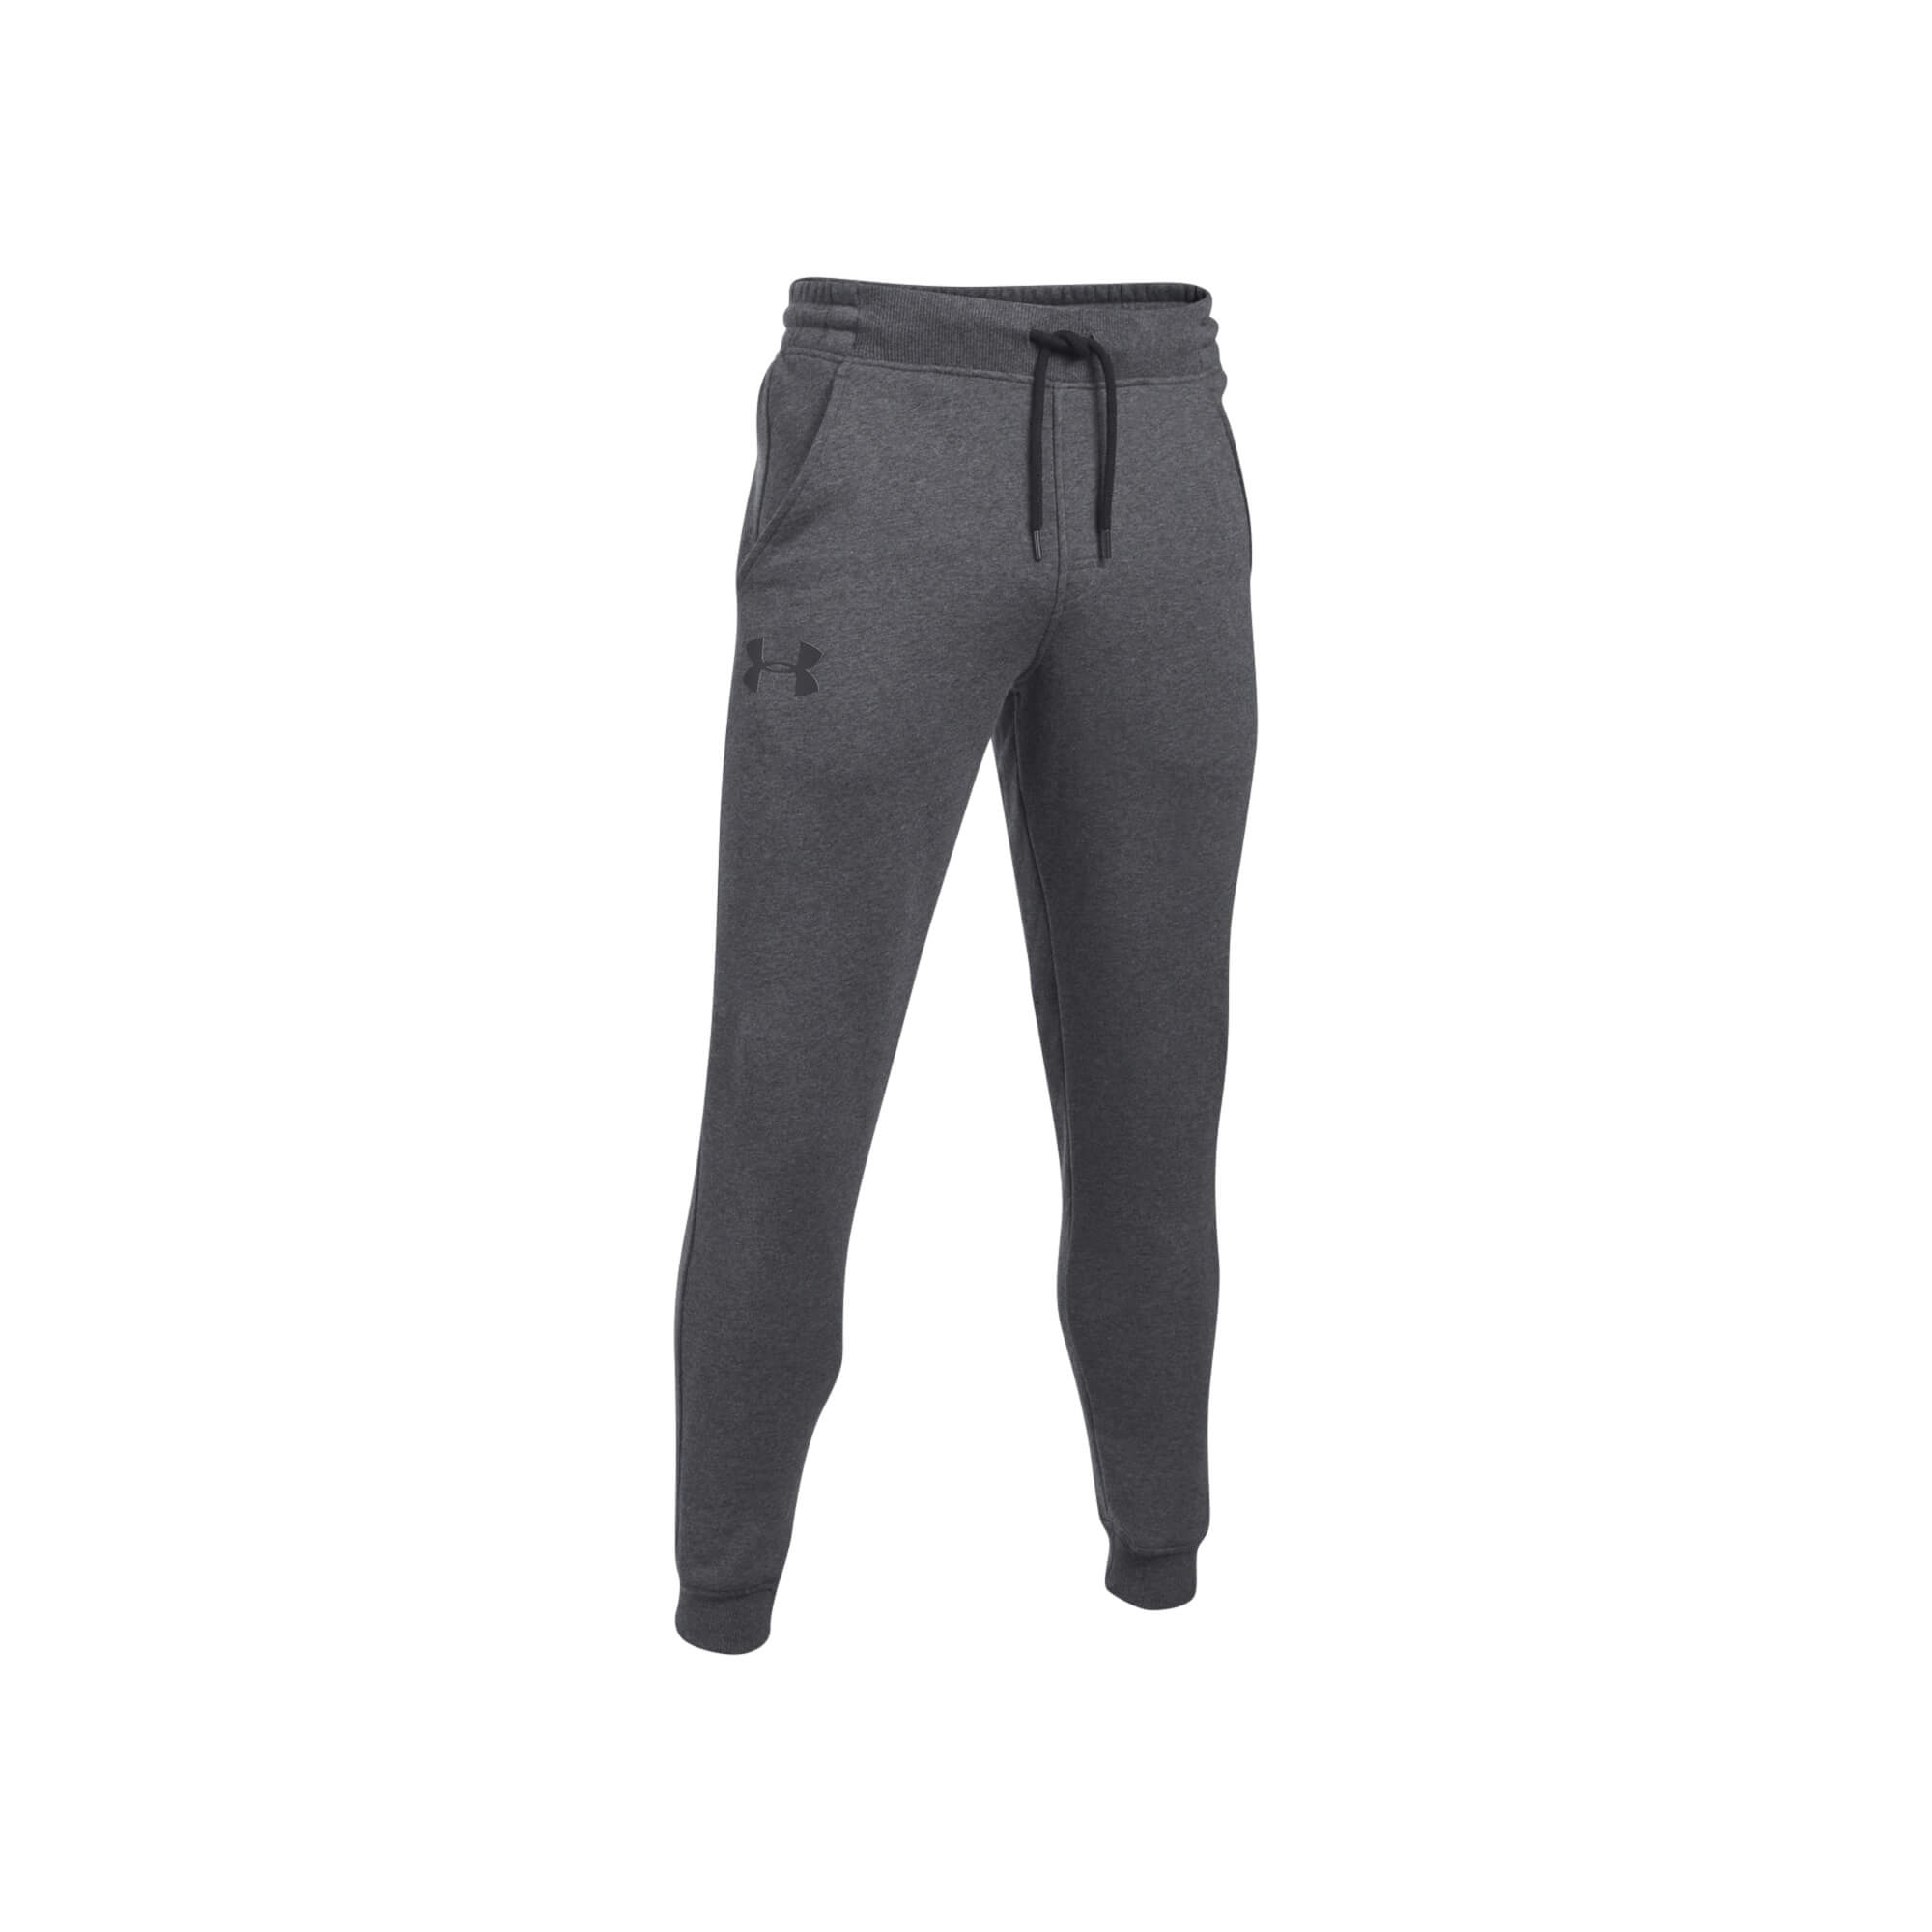 Rival Fitted Tapered imagine produs